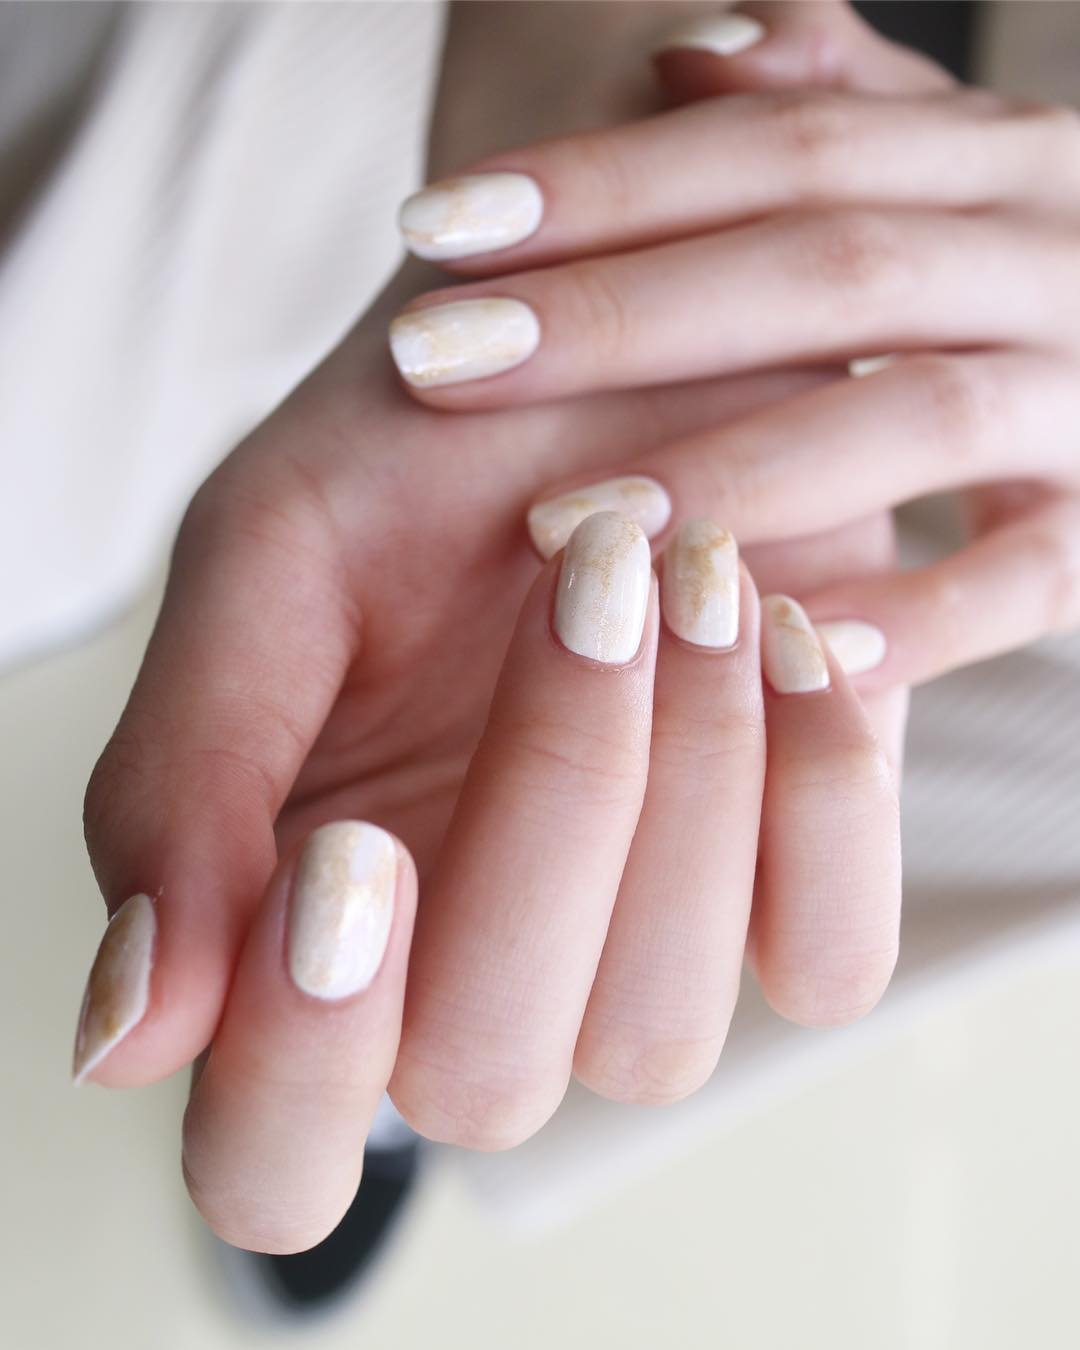 Spring Nail Trends For 2019 - Nail designs for spring